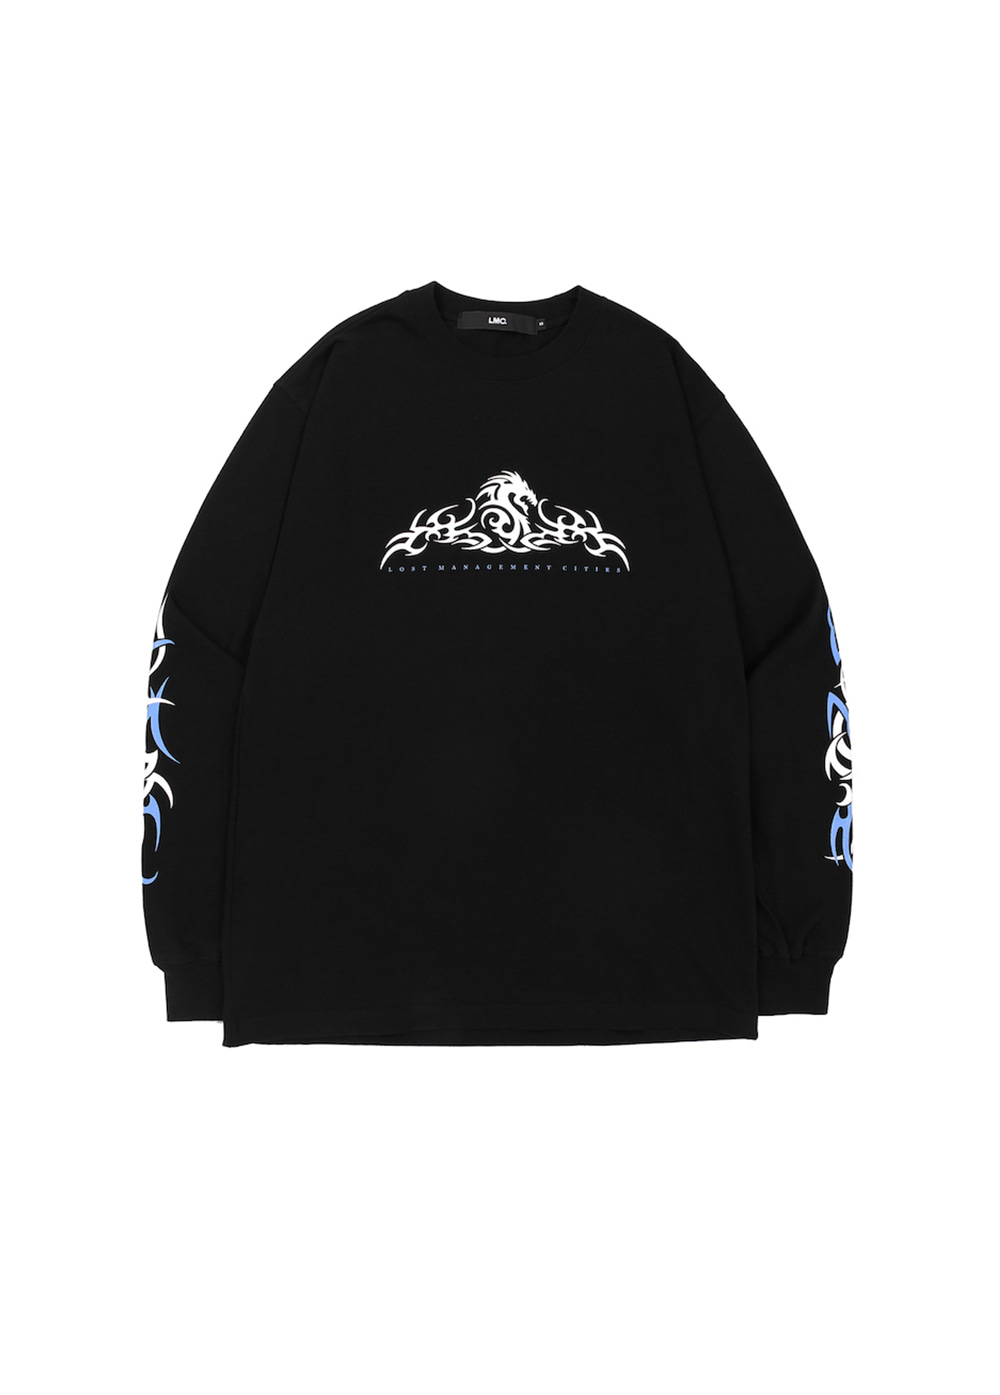 LMC TRIBAL LONG SLV TEE black